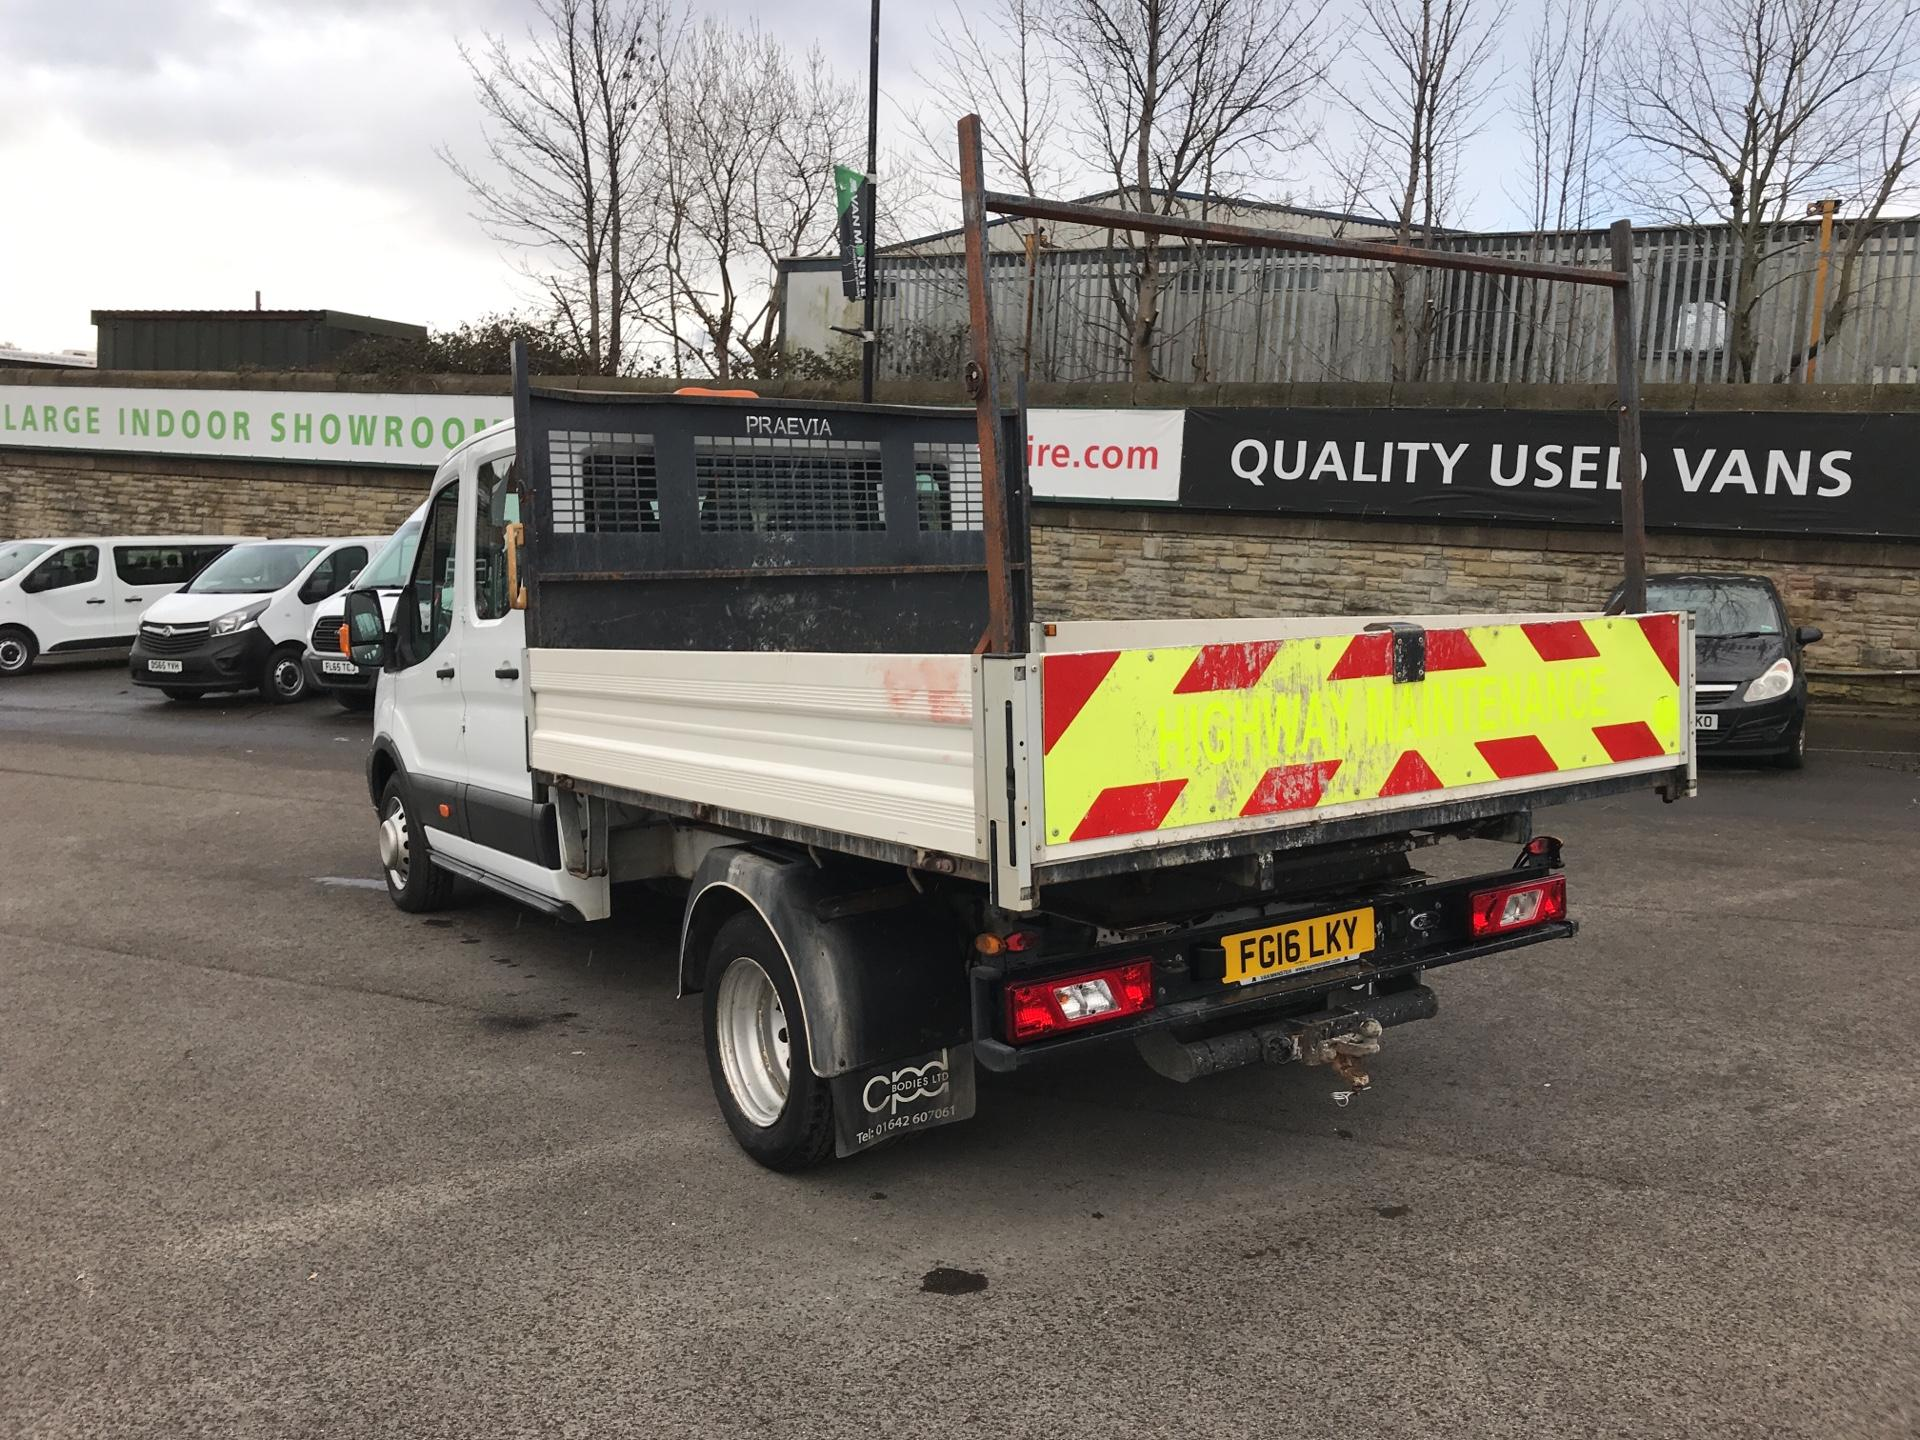 2016 Ford Transit 2.2 TDCI LWB DOUBLE CAB TIPPER EURO 5  (FG16LKY) Image 5